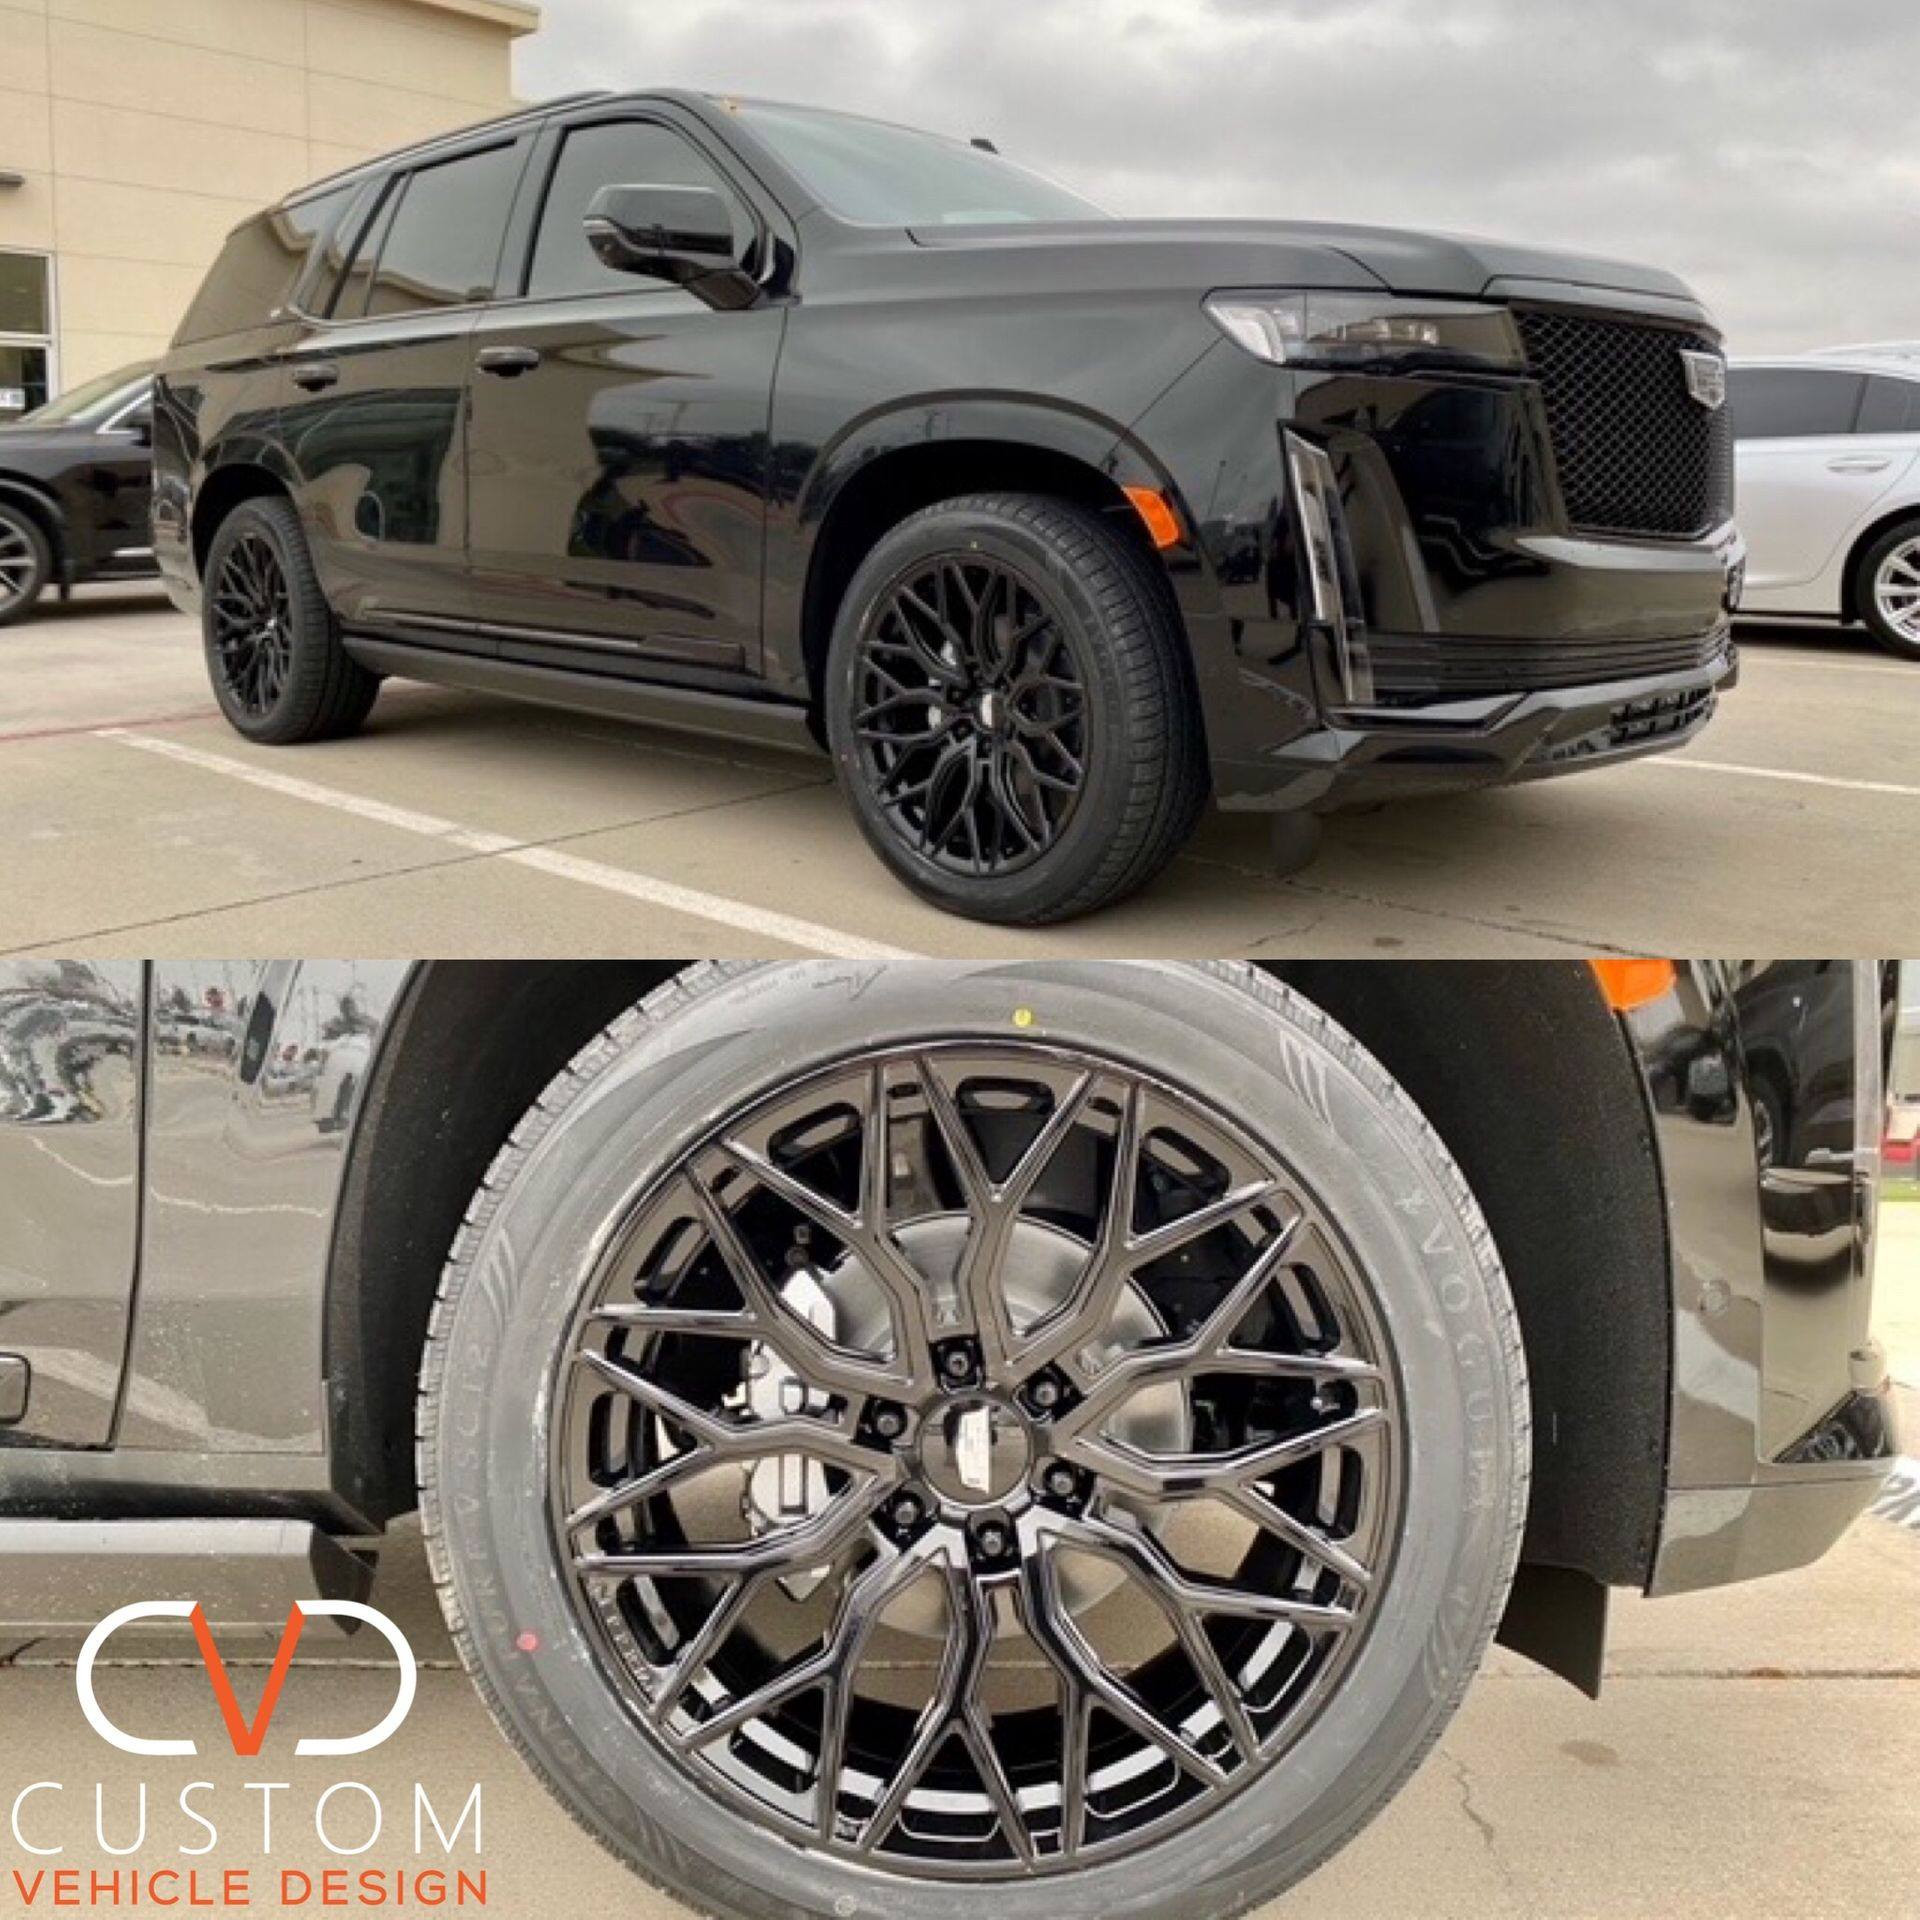 "2021 Cadillac Escalade with 24"" Vossen Wheels & Vogue Signature V Tyres"